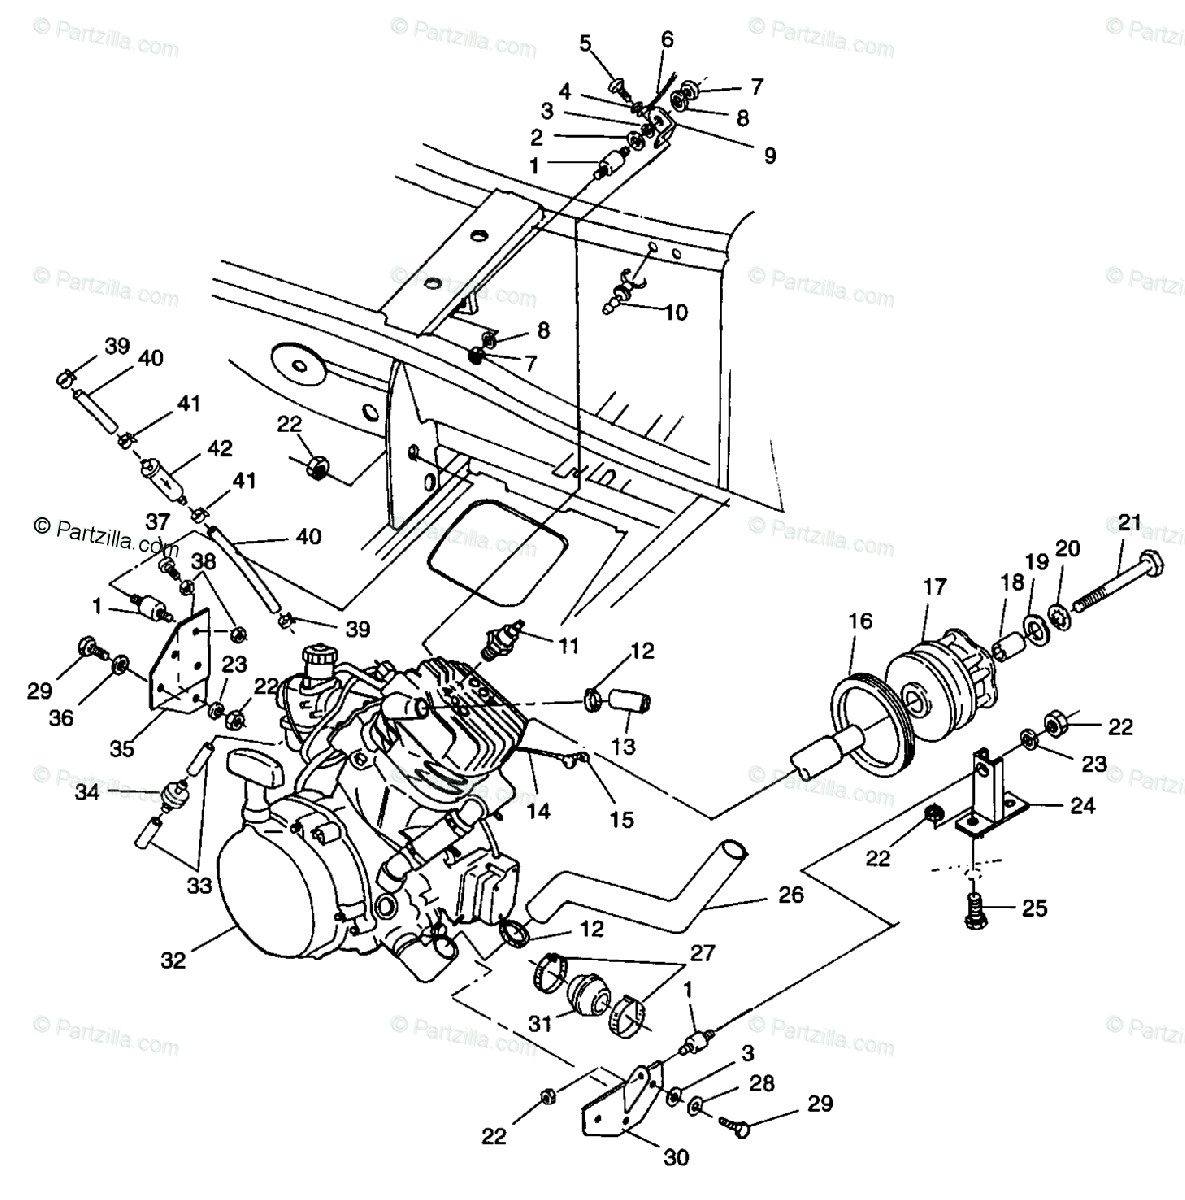 Polaris Scrambler 400 Parts Diagram